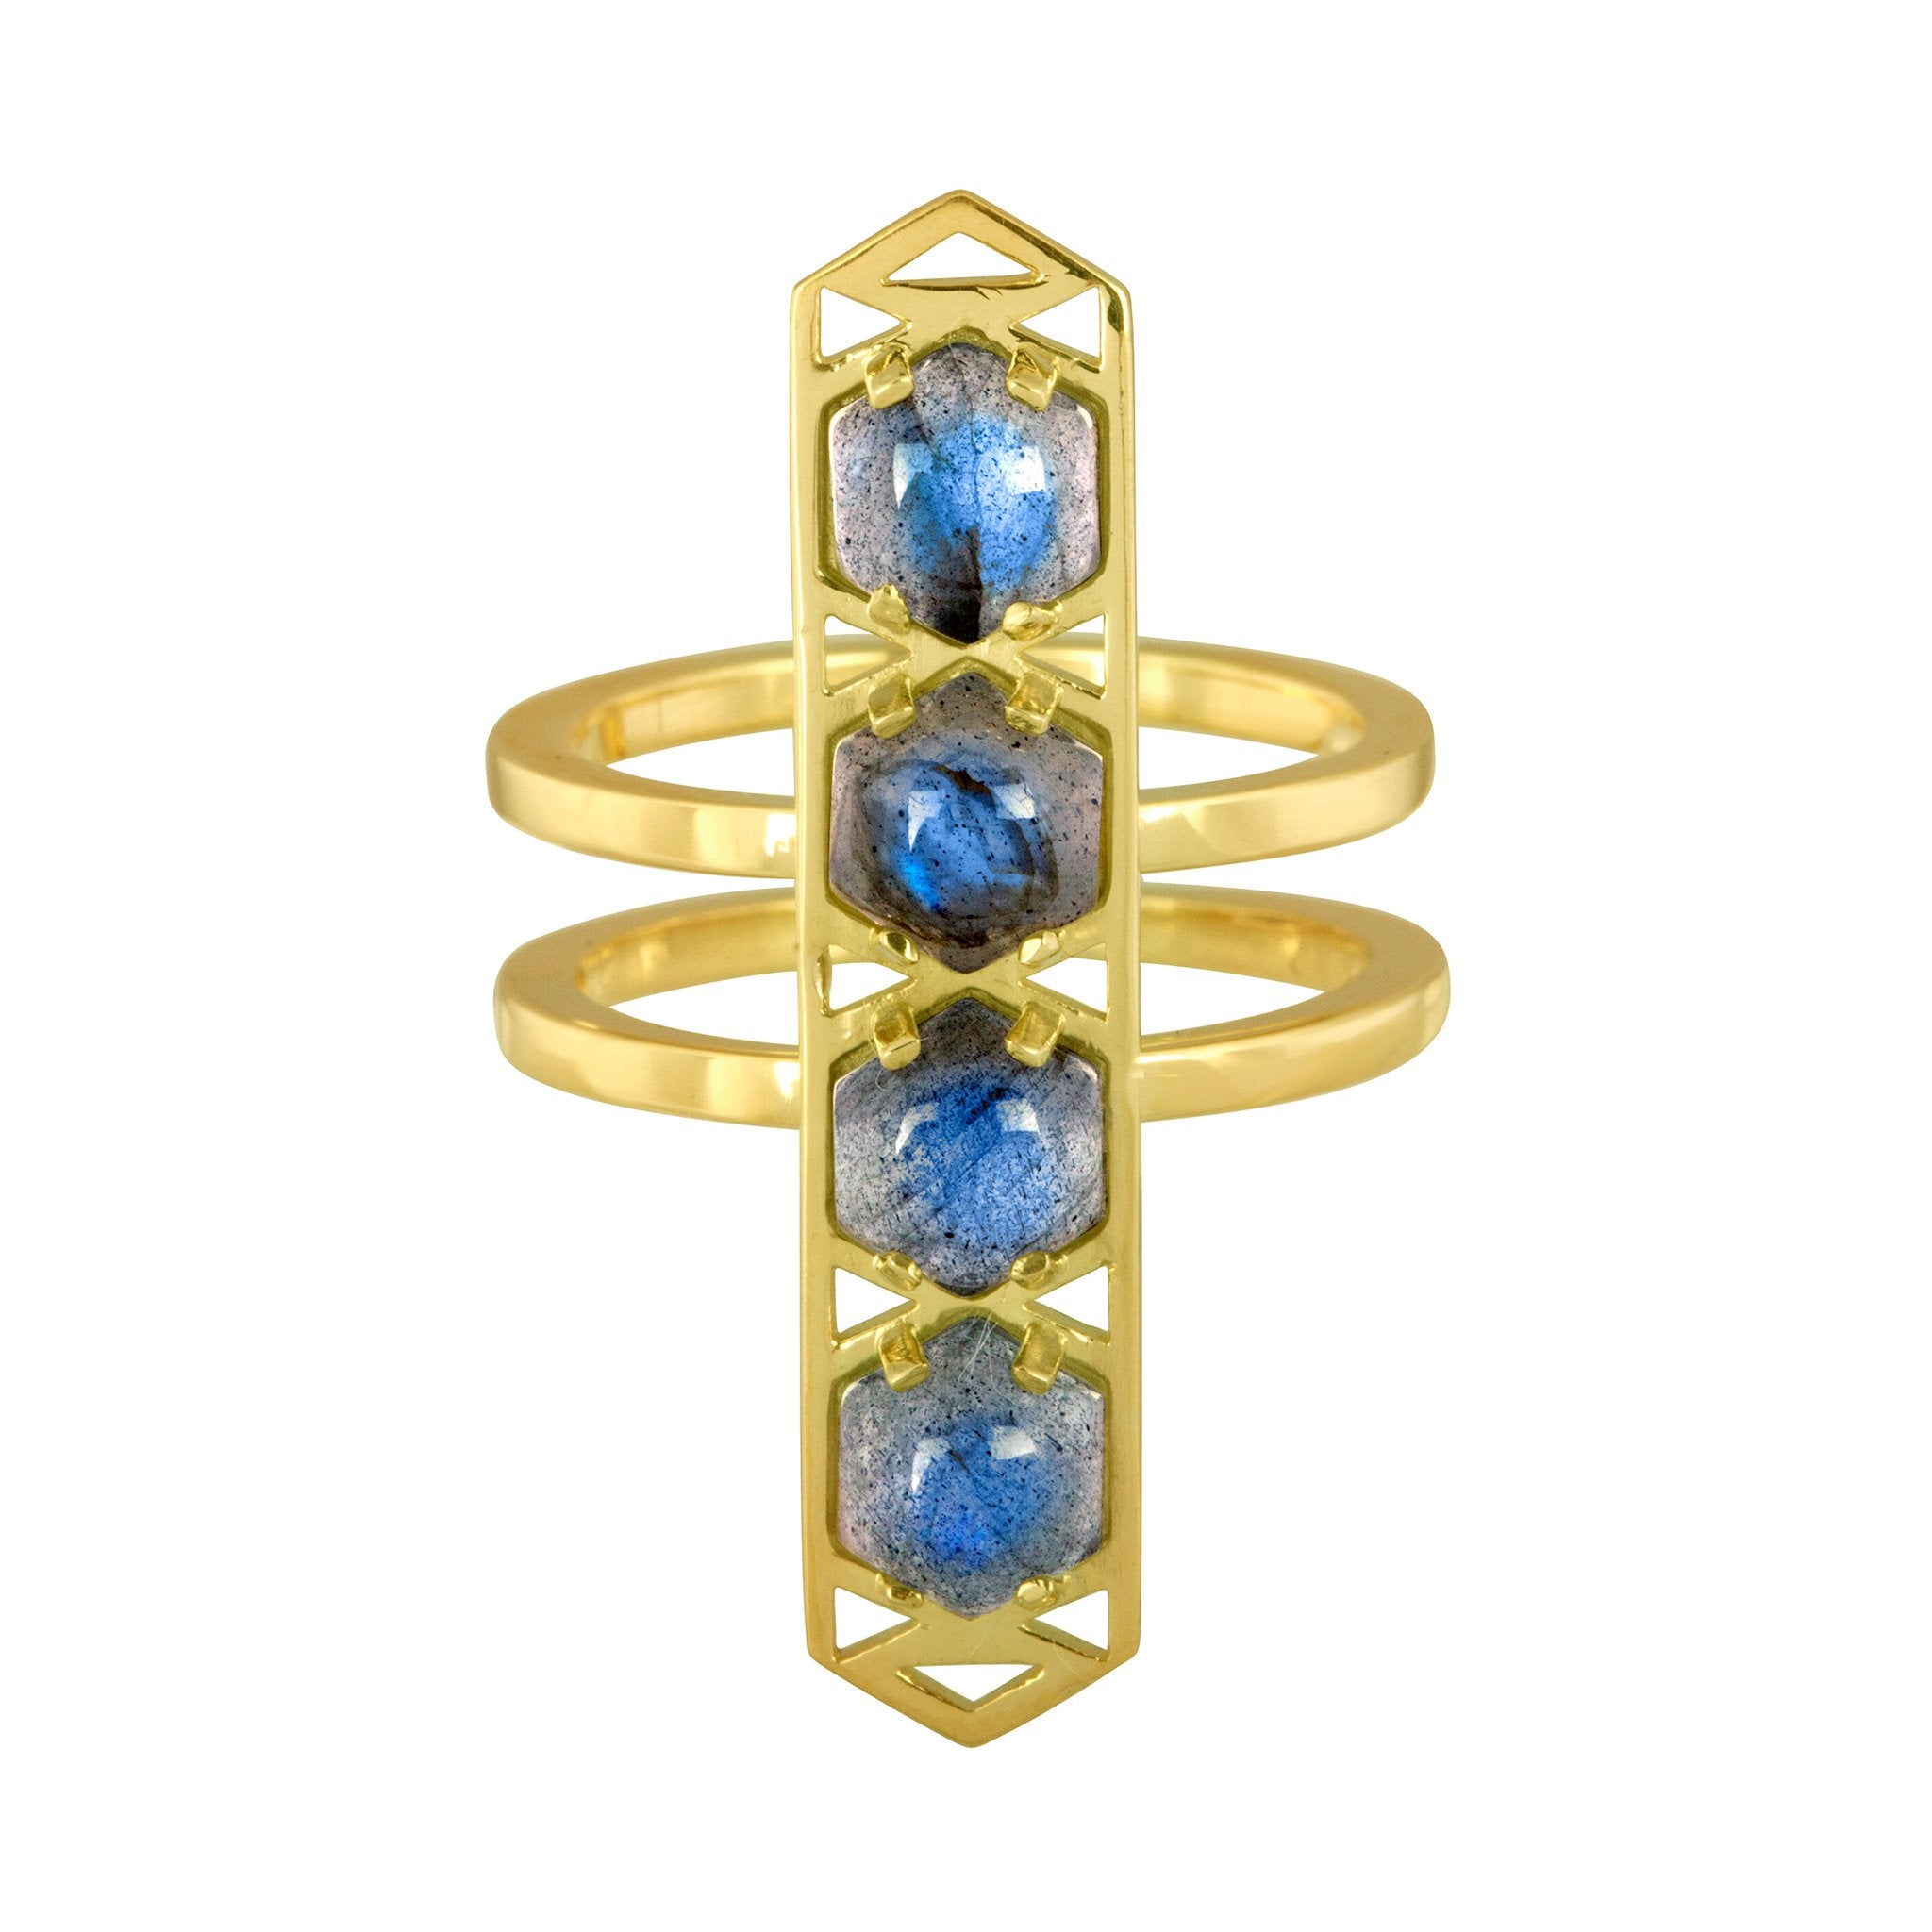 Stretto Ring: 18k Gold, Hexagon Cabachon Labradorite